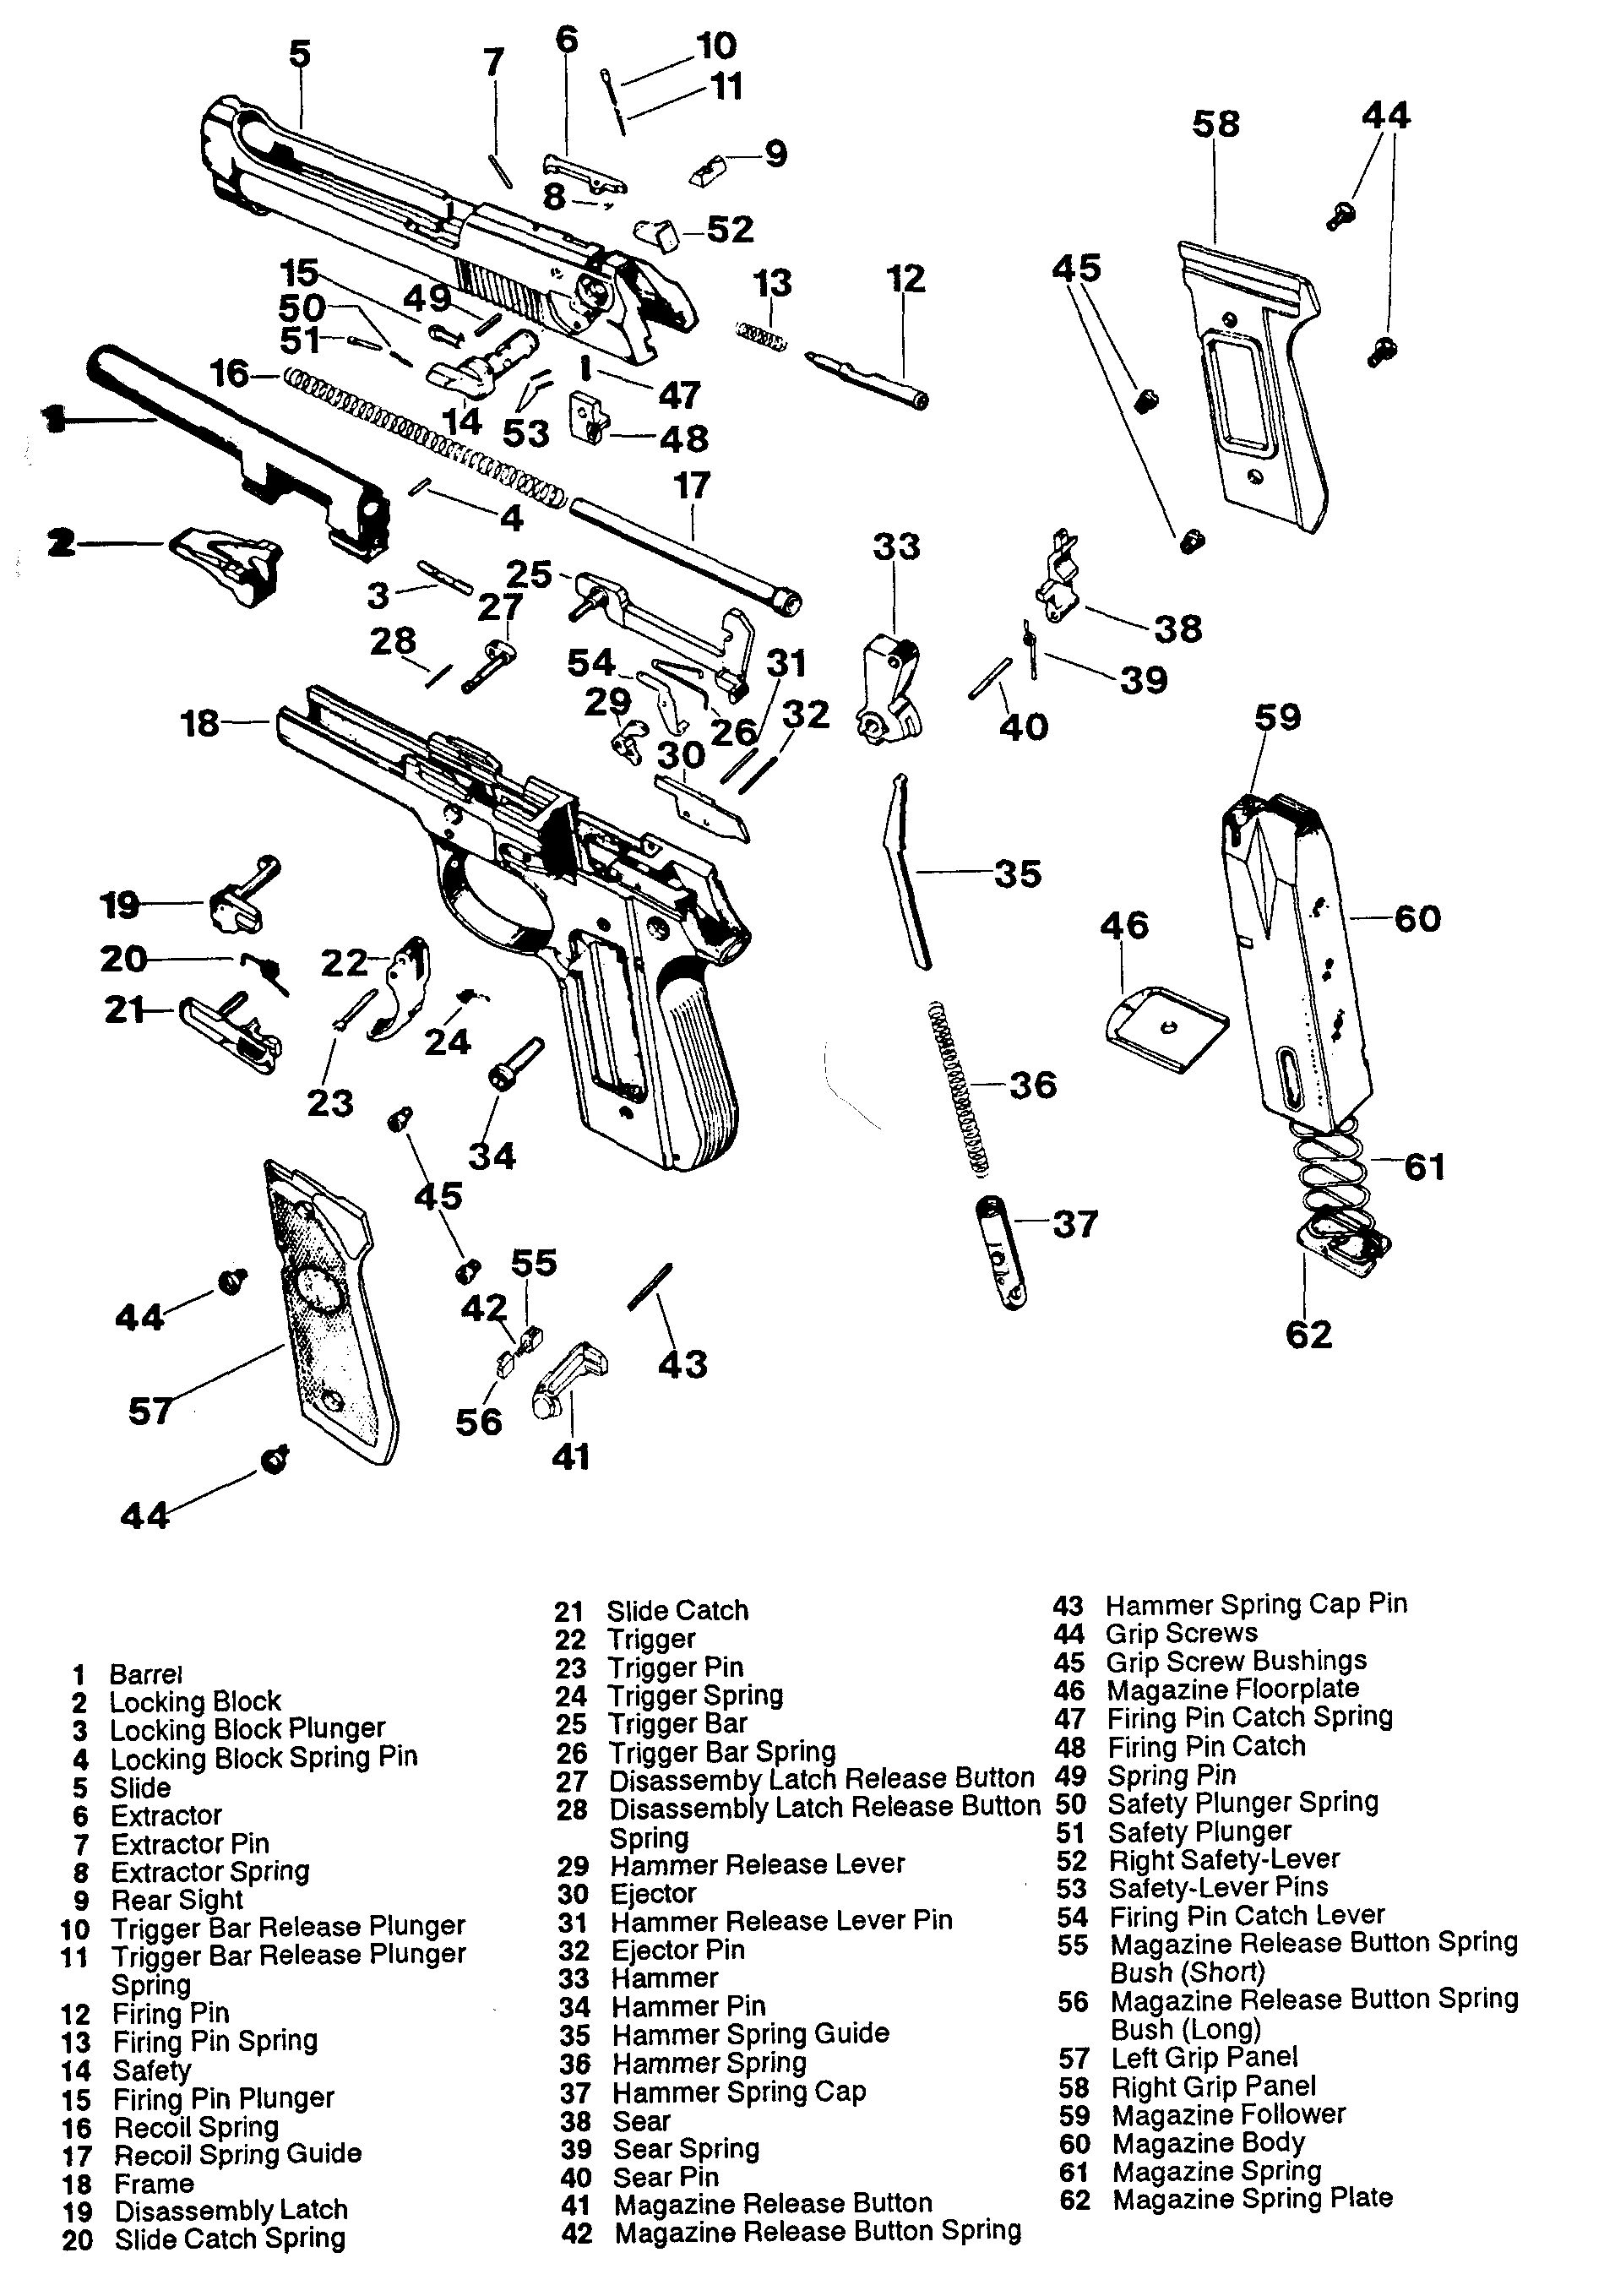 Taurus Pt 1911 Schematic Auto Electrical Wiring Diagram Related With